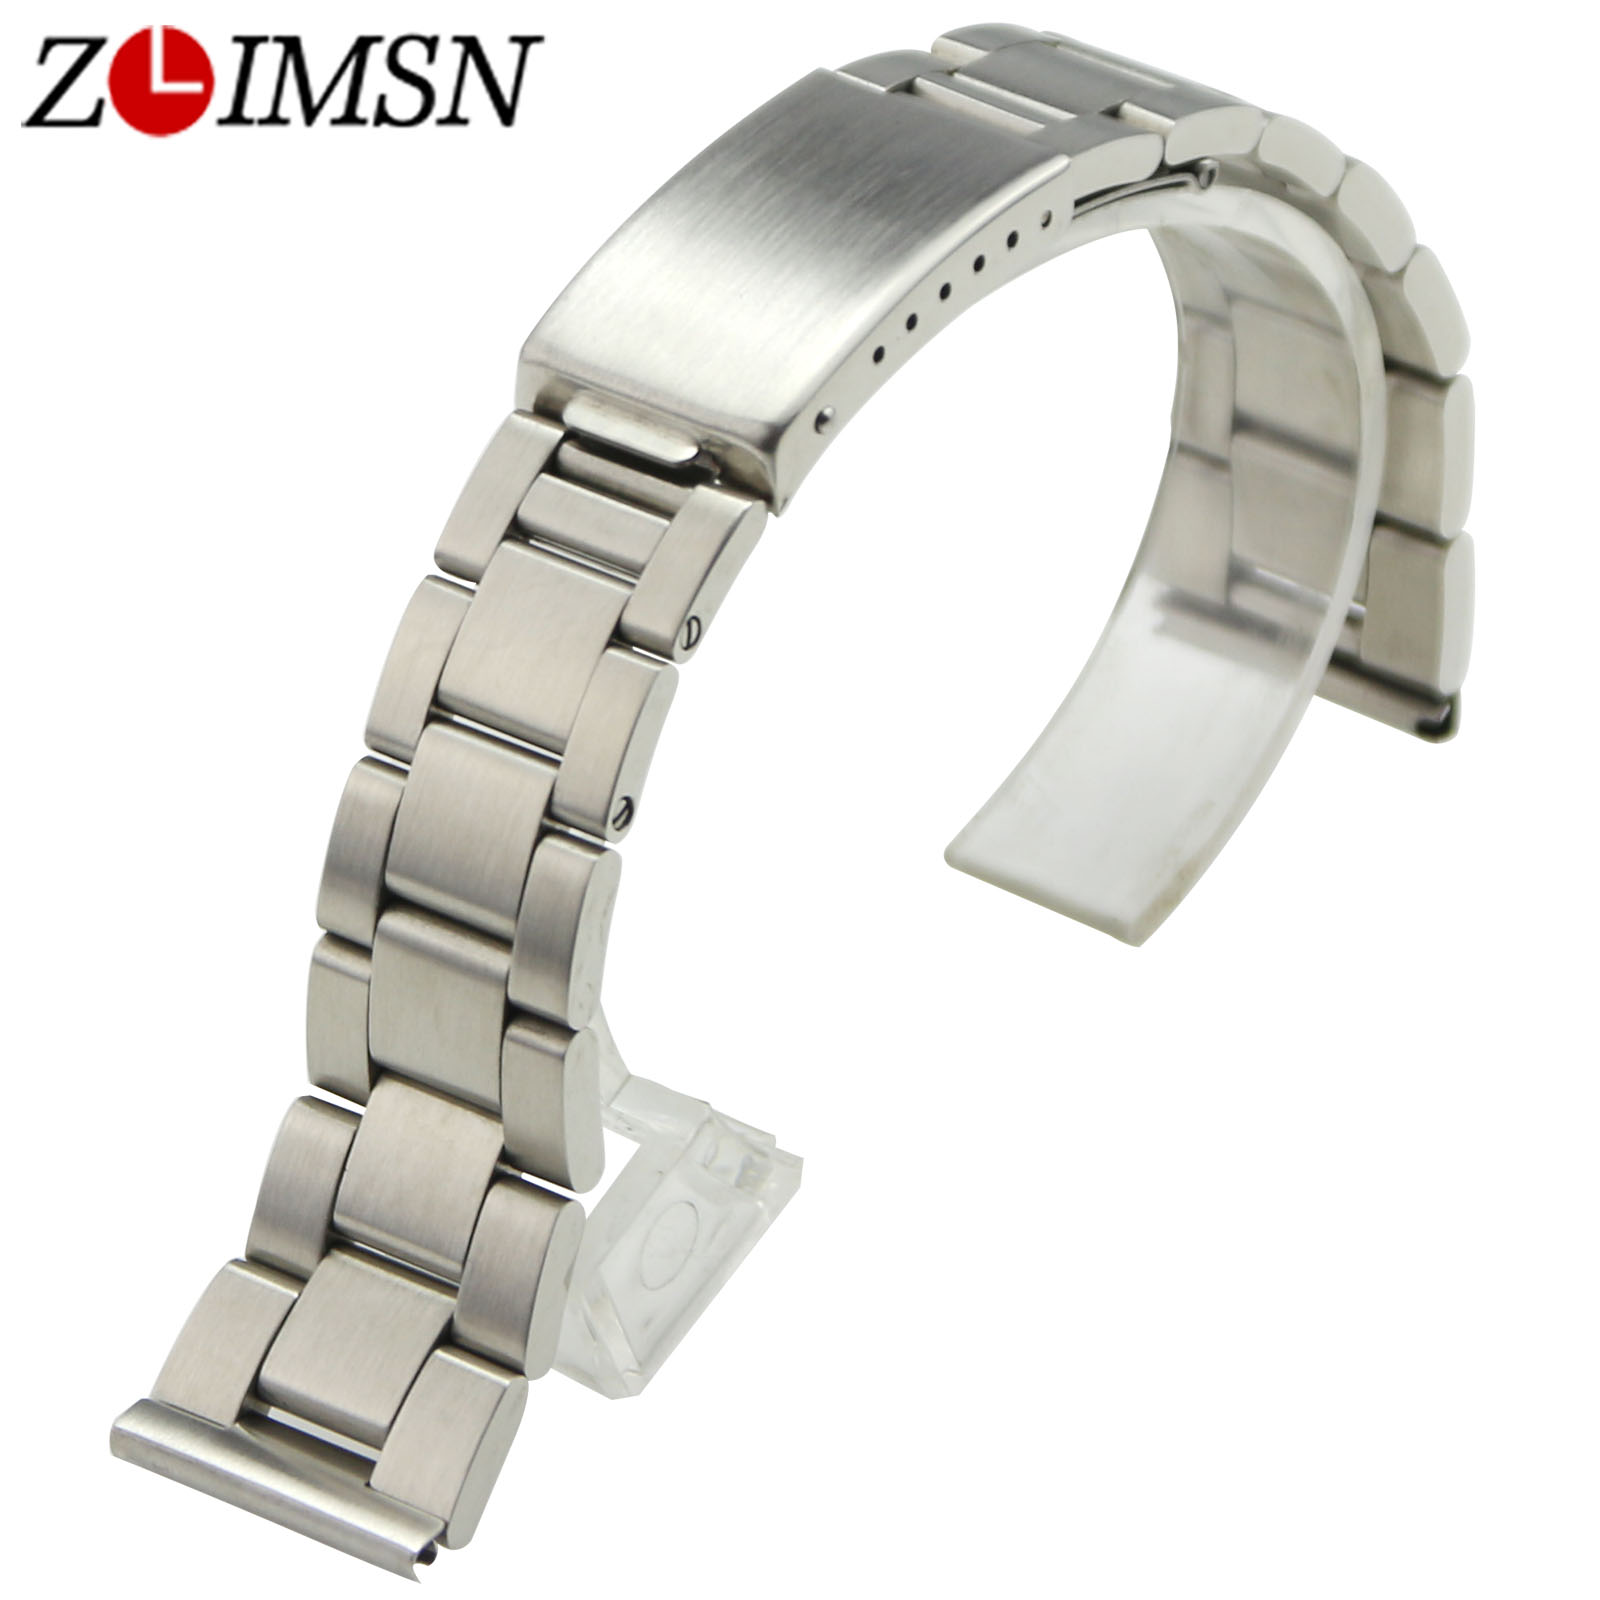 ZLIMSN Stainless Steel Watchbands Replacement Silver 18mm 19mm 20mm Brushed Sport Watch Bracelets Flat End Deployment Clasp